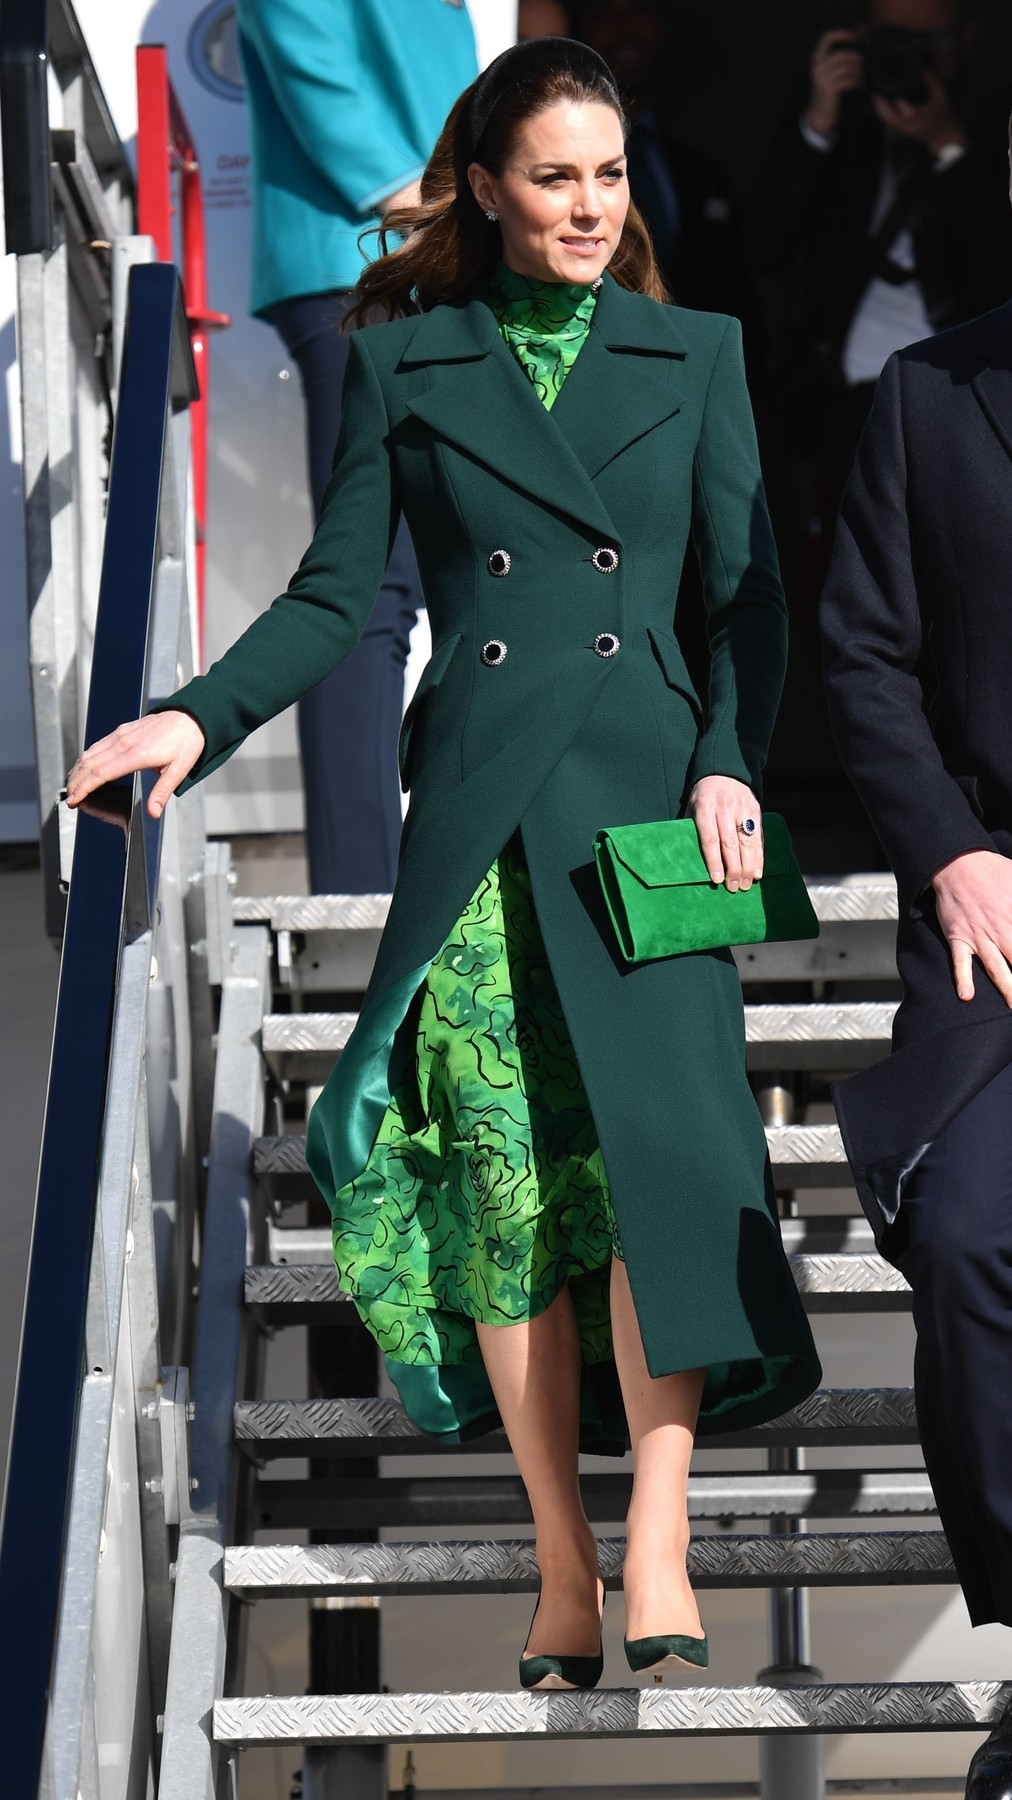 Catherine Duchess of Cambridge arrives at Dublin International Airport Prince William and Catherine Duchess of Cambridge visit to Ireland - 03 Mar 2020, Image: 502756684, License: Rights-managed, Restrictions: , Model Release: no, Credit line: Tim Rooke / Shutterstock Editorial / Profimedia